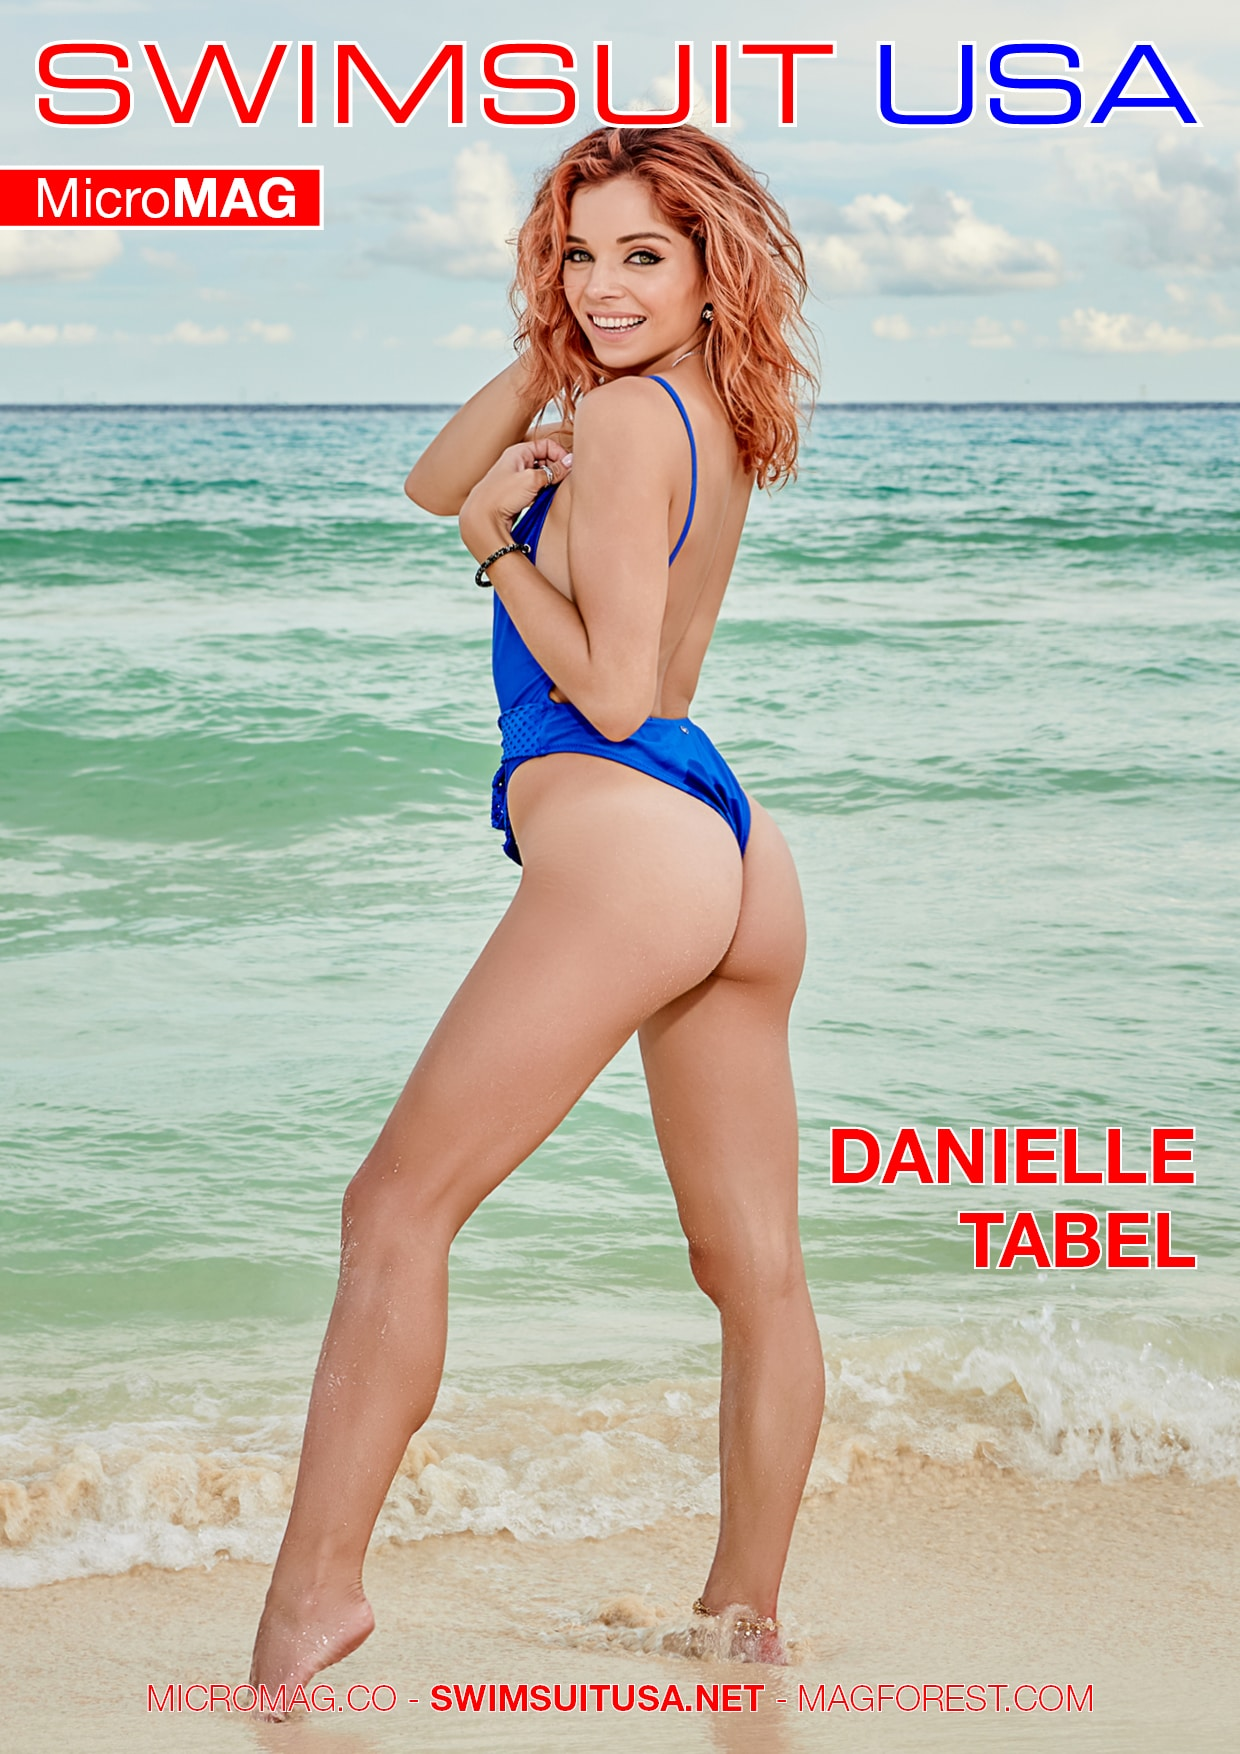 Swimsuit USA MicroMAG - Danielle Tabel 2